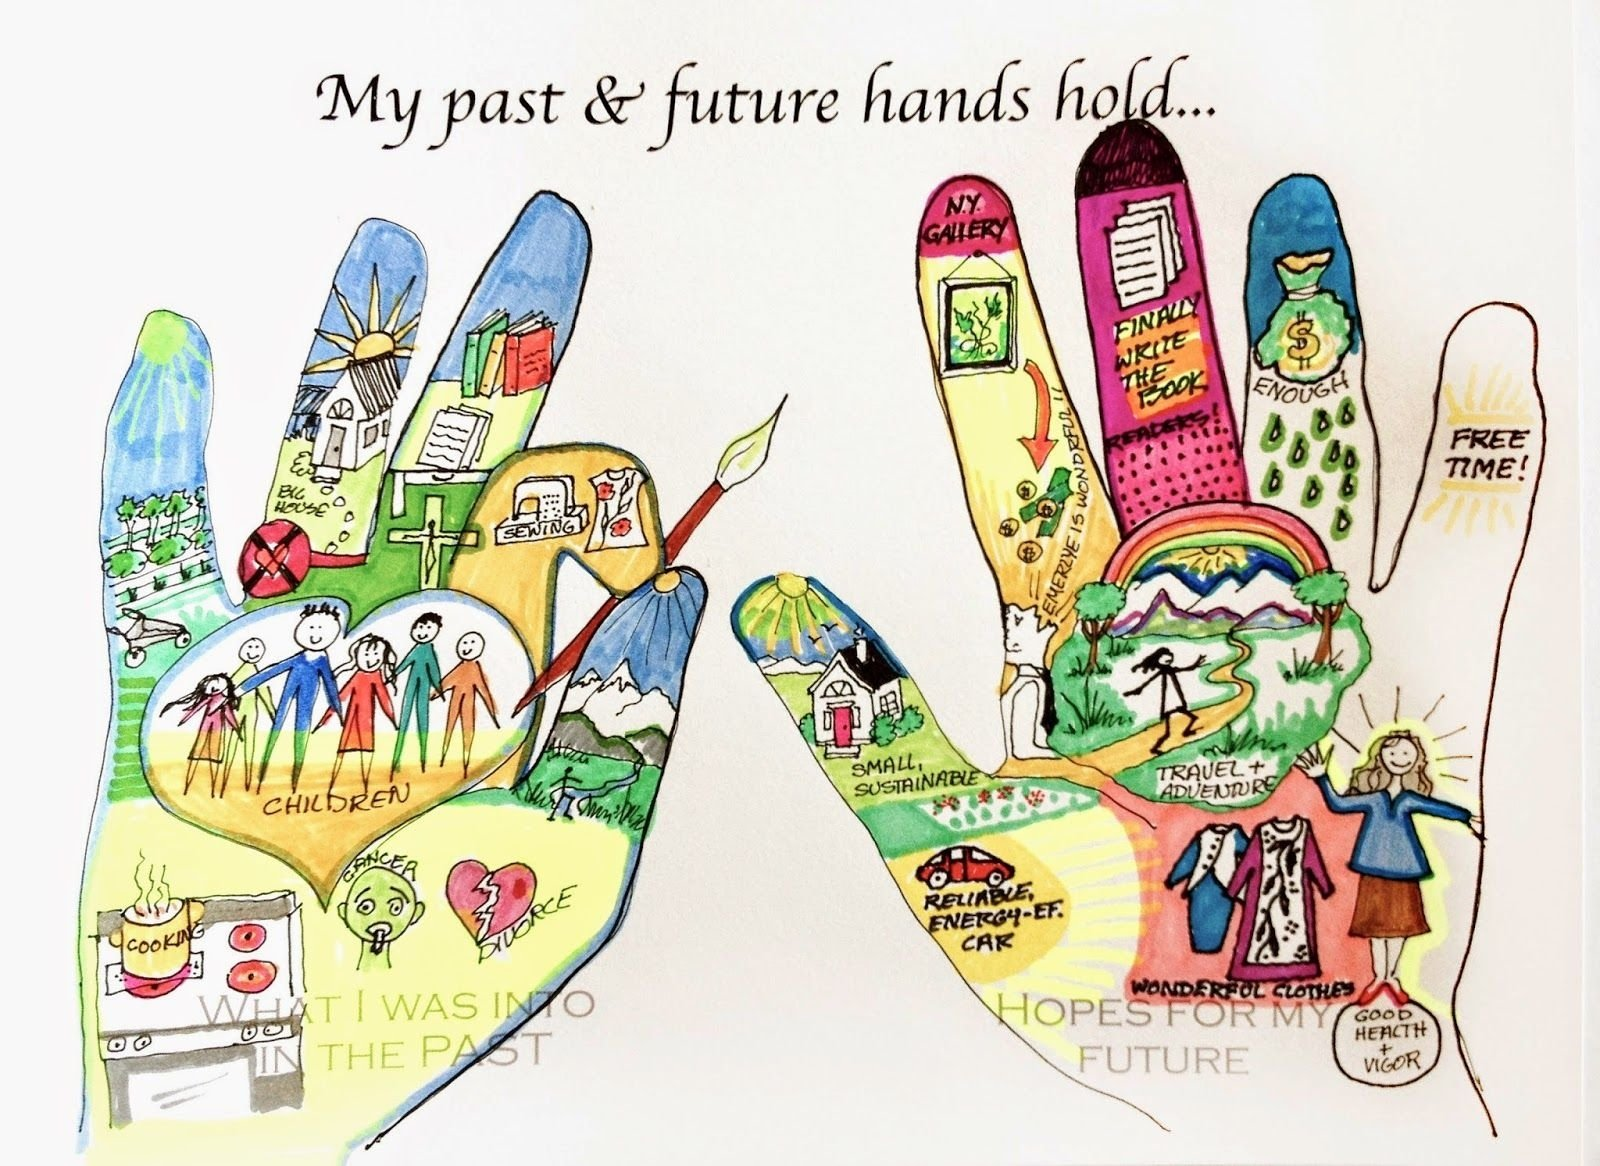 cynthia emerlye's art therapy group. trace your hands and fill them